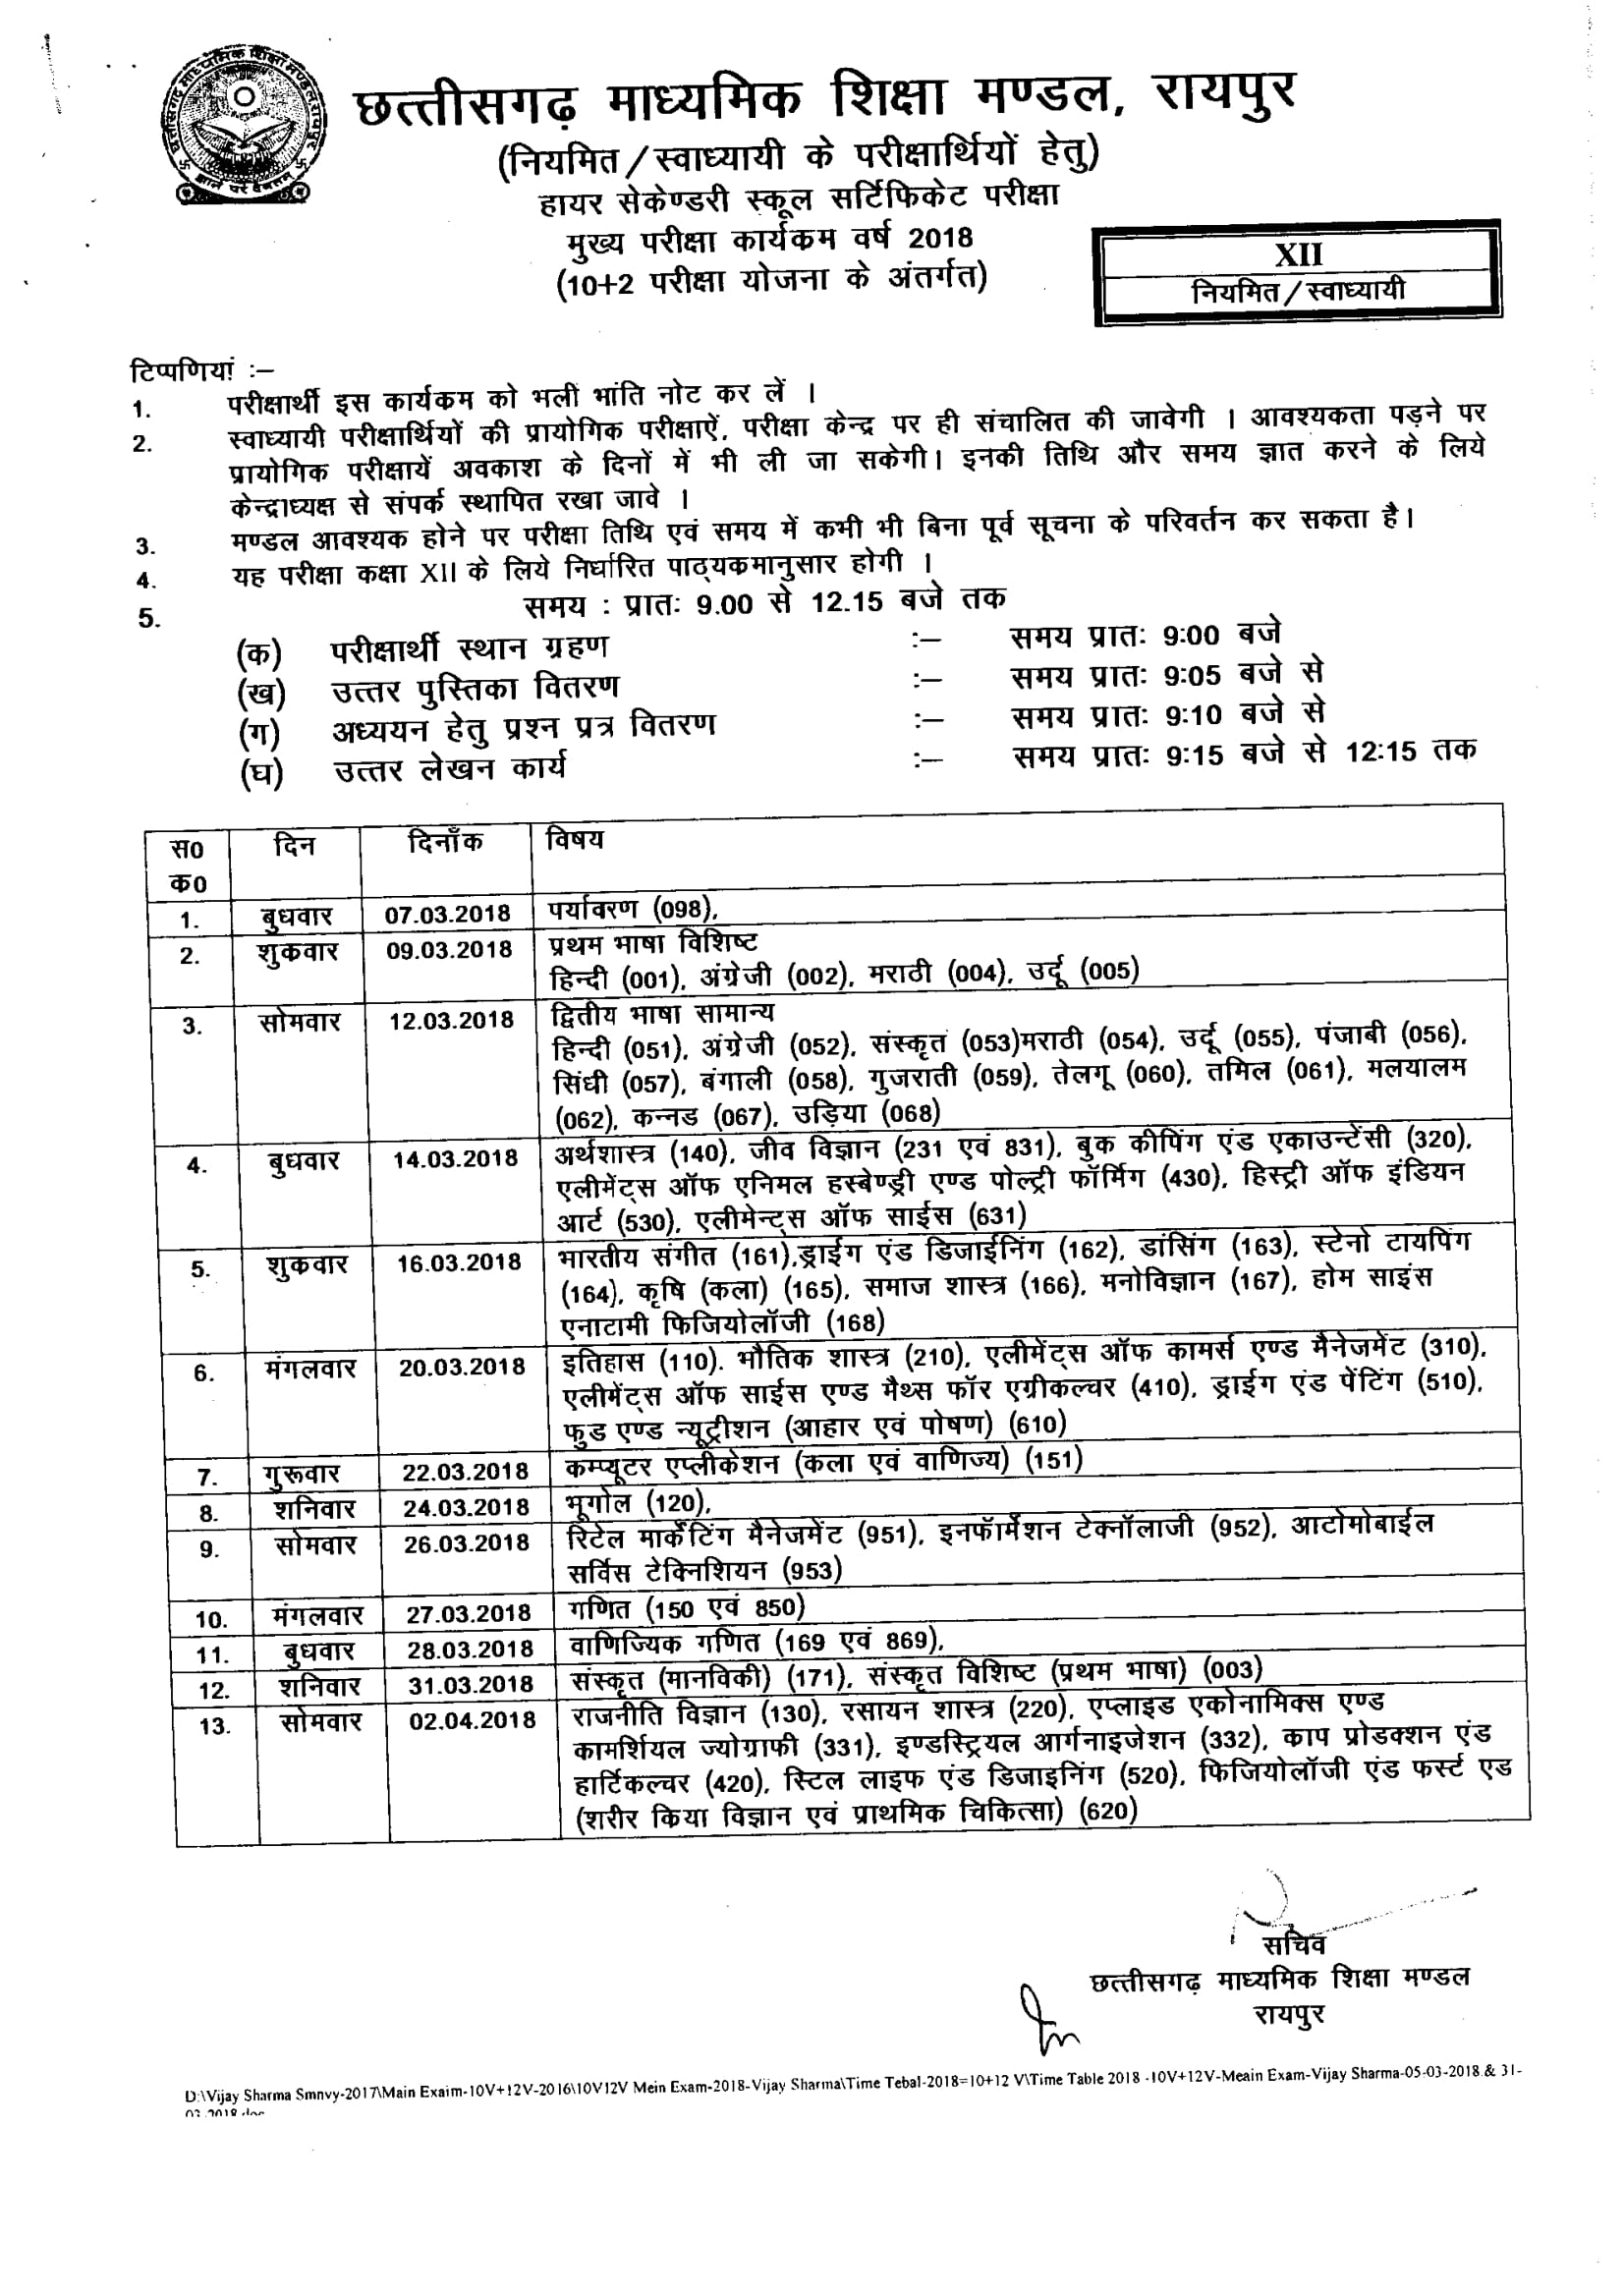 Cgbse 12th time table 2018 cg 12th 2018 exam date pdf cgbse 12th time table 2018 cg 12th 2018 exam date pdf chhattisgarh 12th date sheet 2018 malvernweather Choice Image